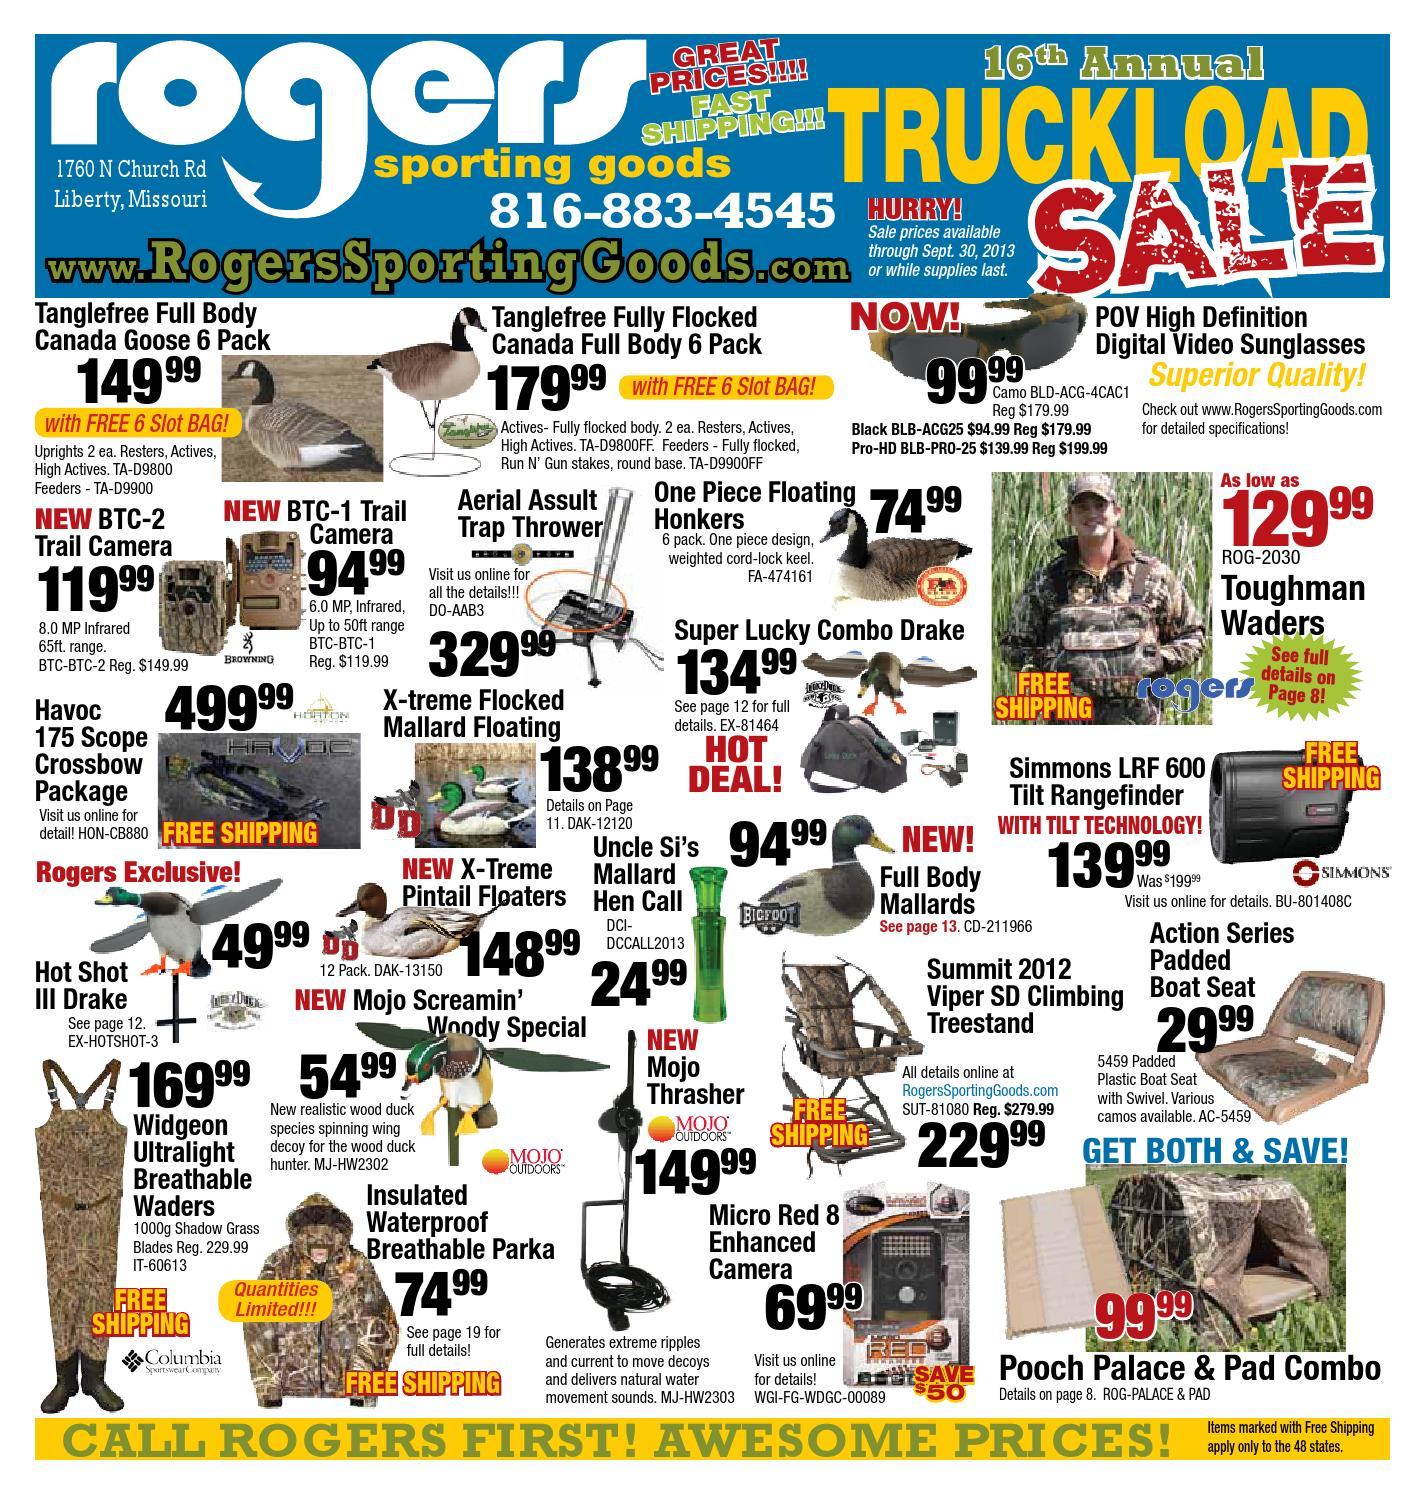 Rogers sporting goods coupon - Lords and taylor dresses